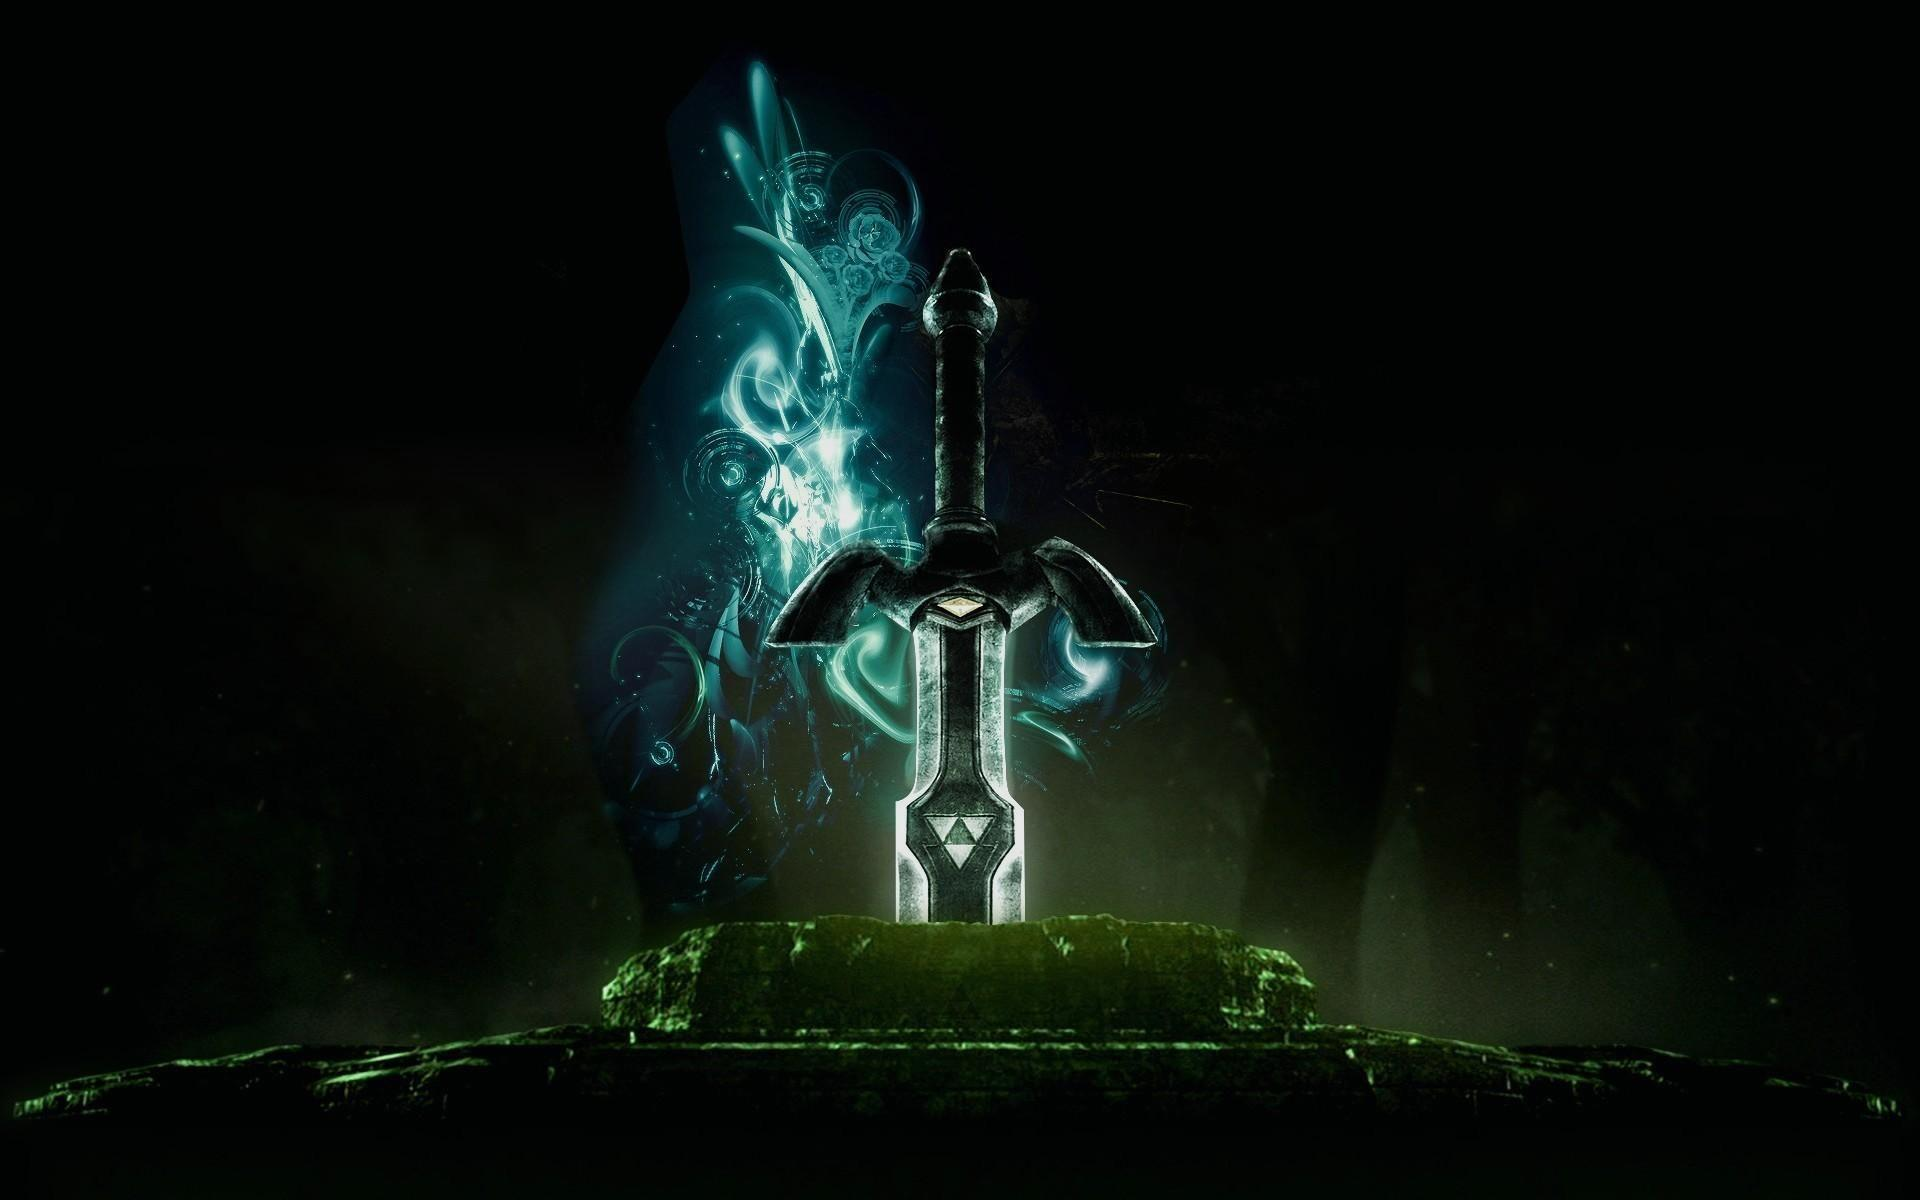 The Legend Of Zelda Wallpapers Desktop HD